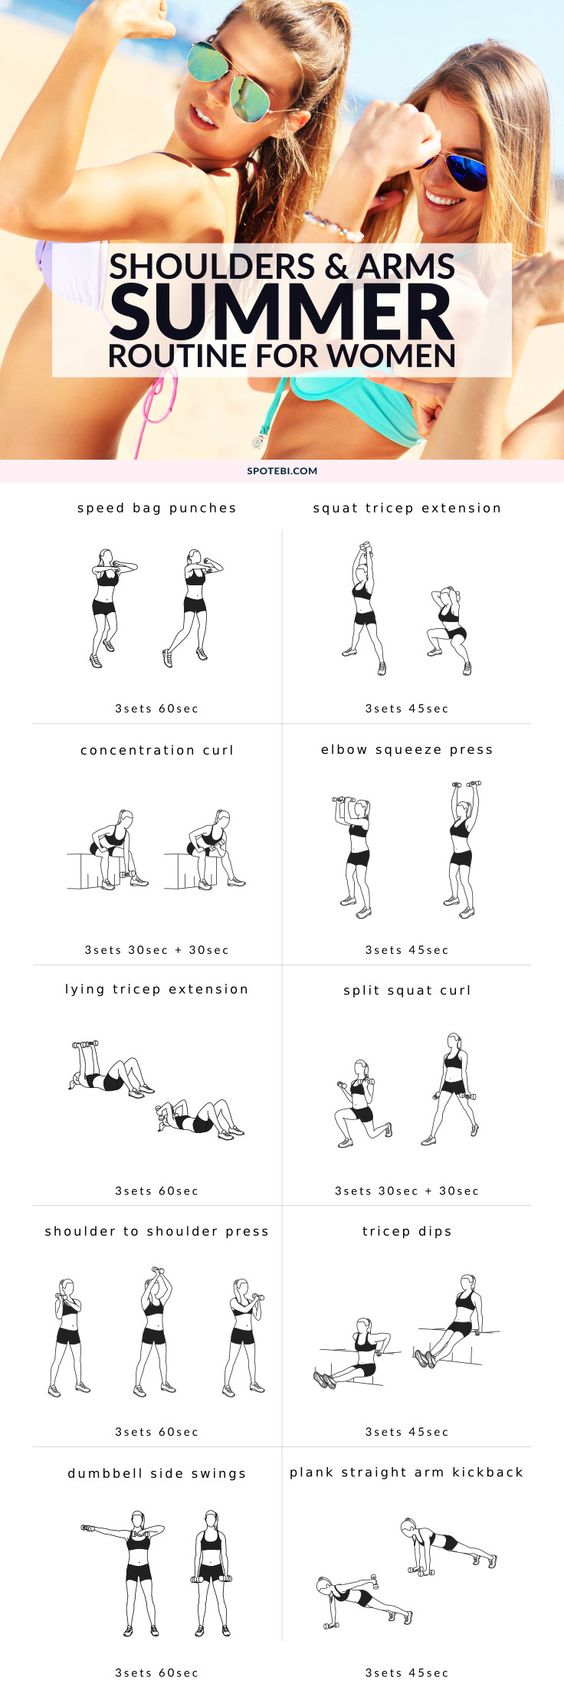 23 Fat Burning Bikini Arm Workouts That Will Shape Your Arms Circuit Style Workout Sculpted